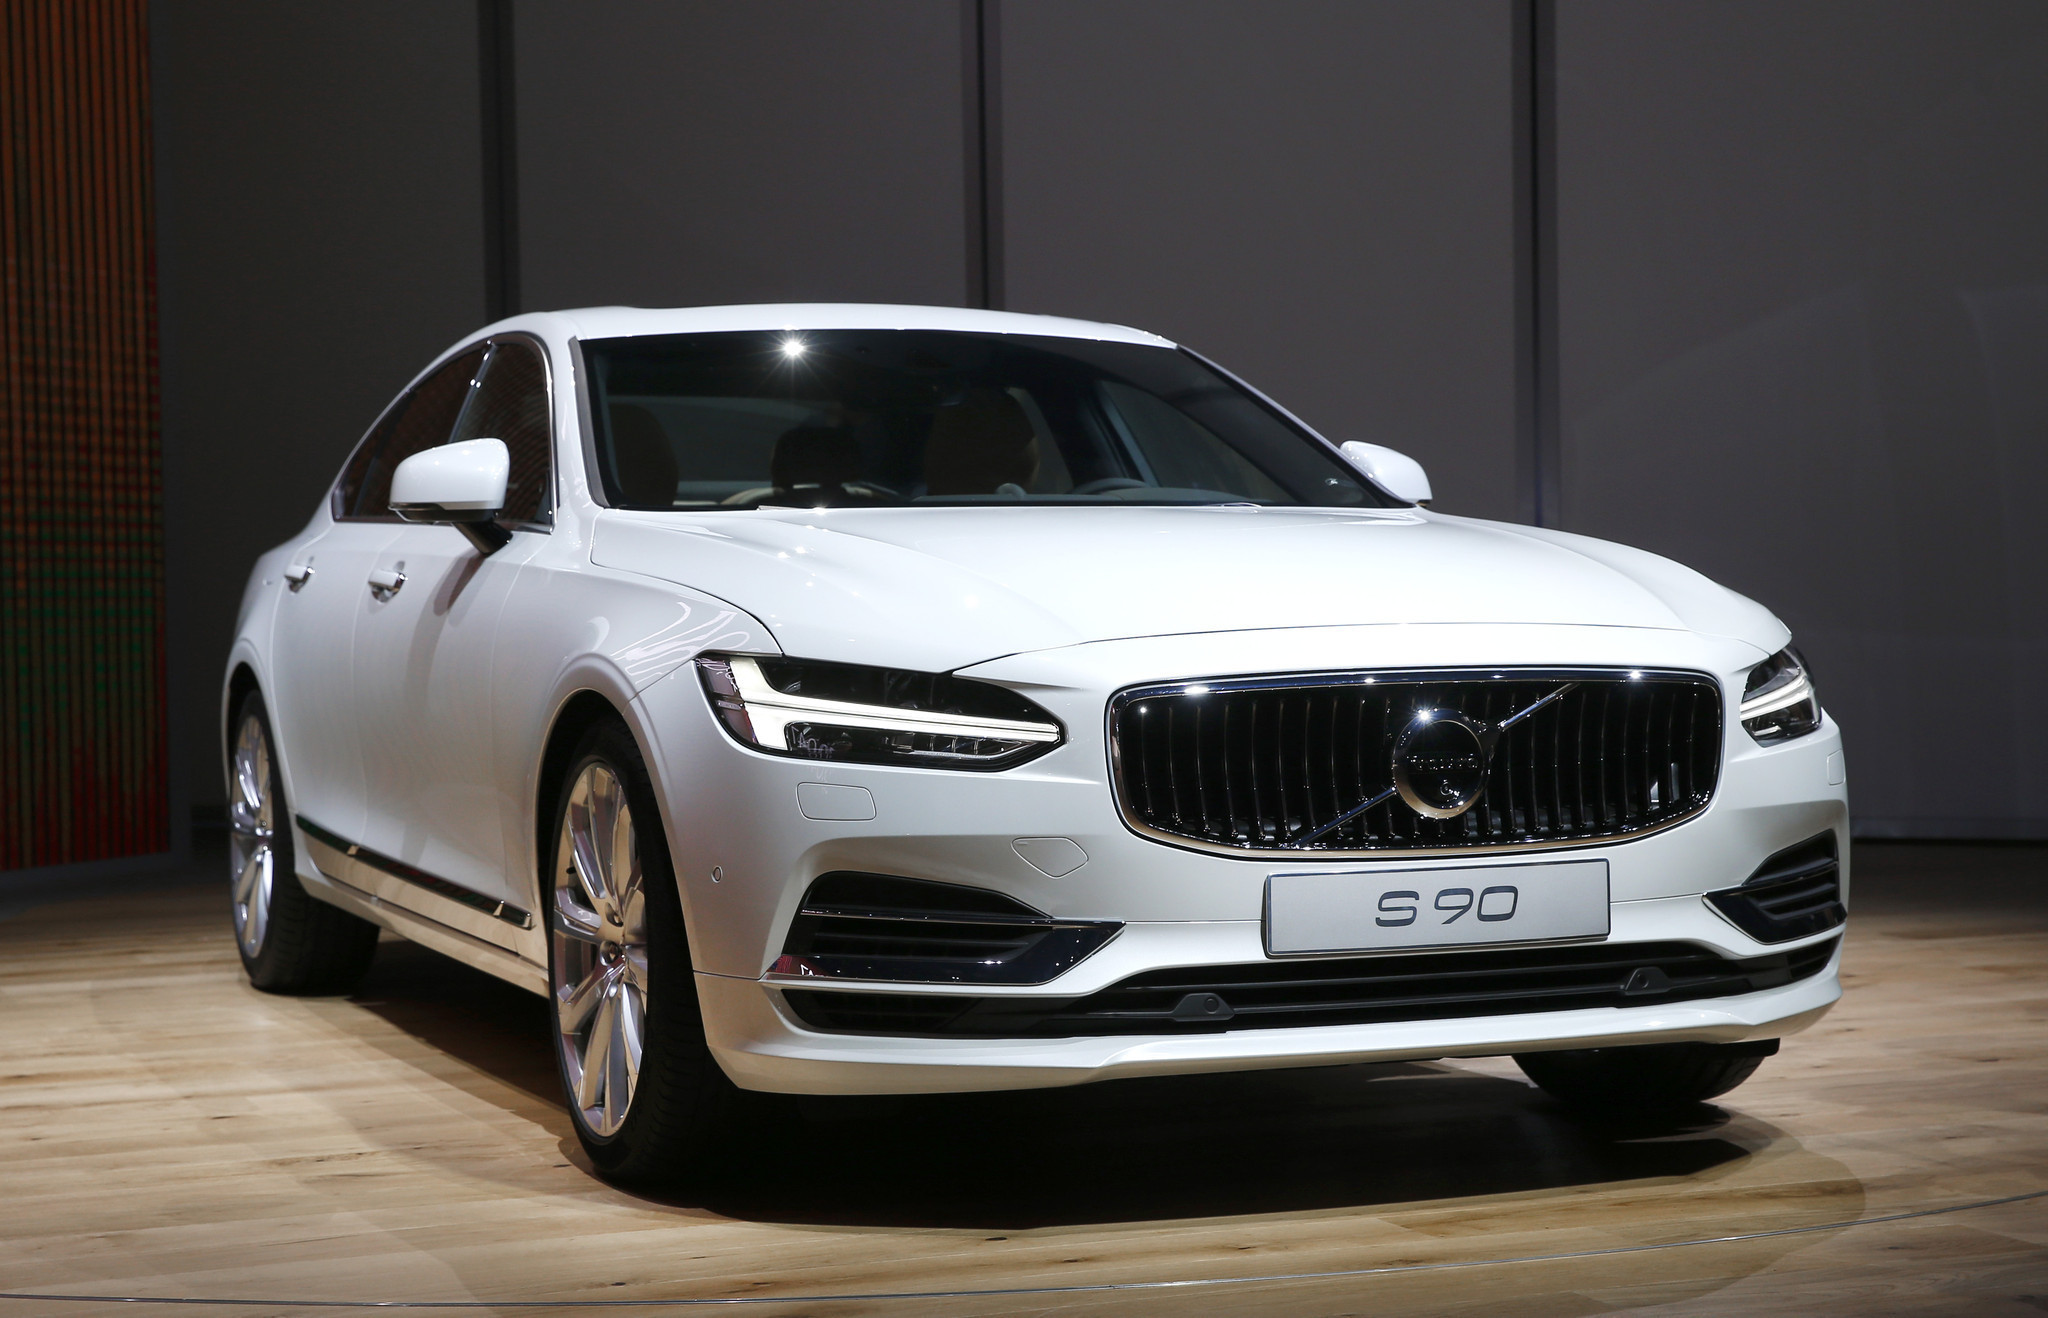 2017 volvo s90 sedan follows in treads of xc90 crossover at chicago auto show chicago tribune. Black Bedroom Furniture Sets. Home Design Ideas